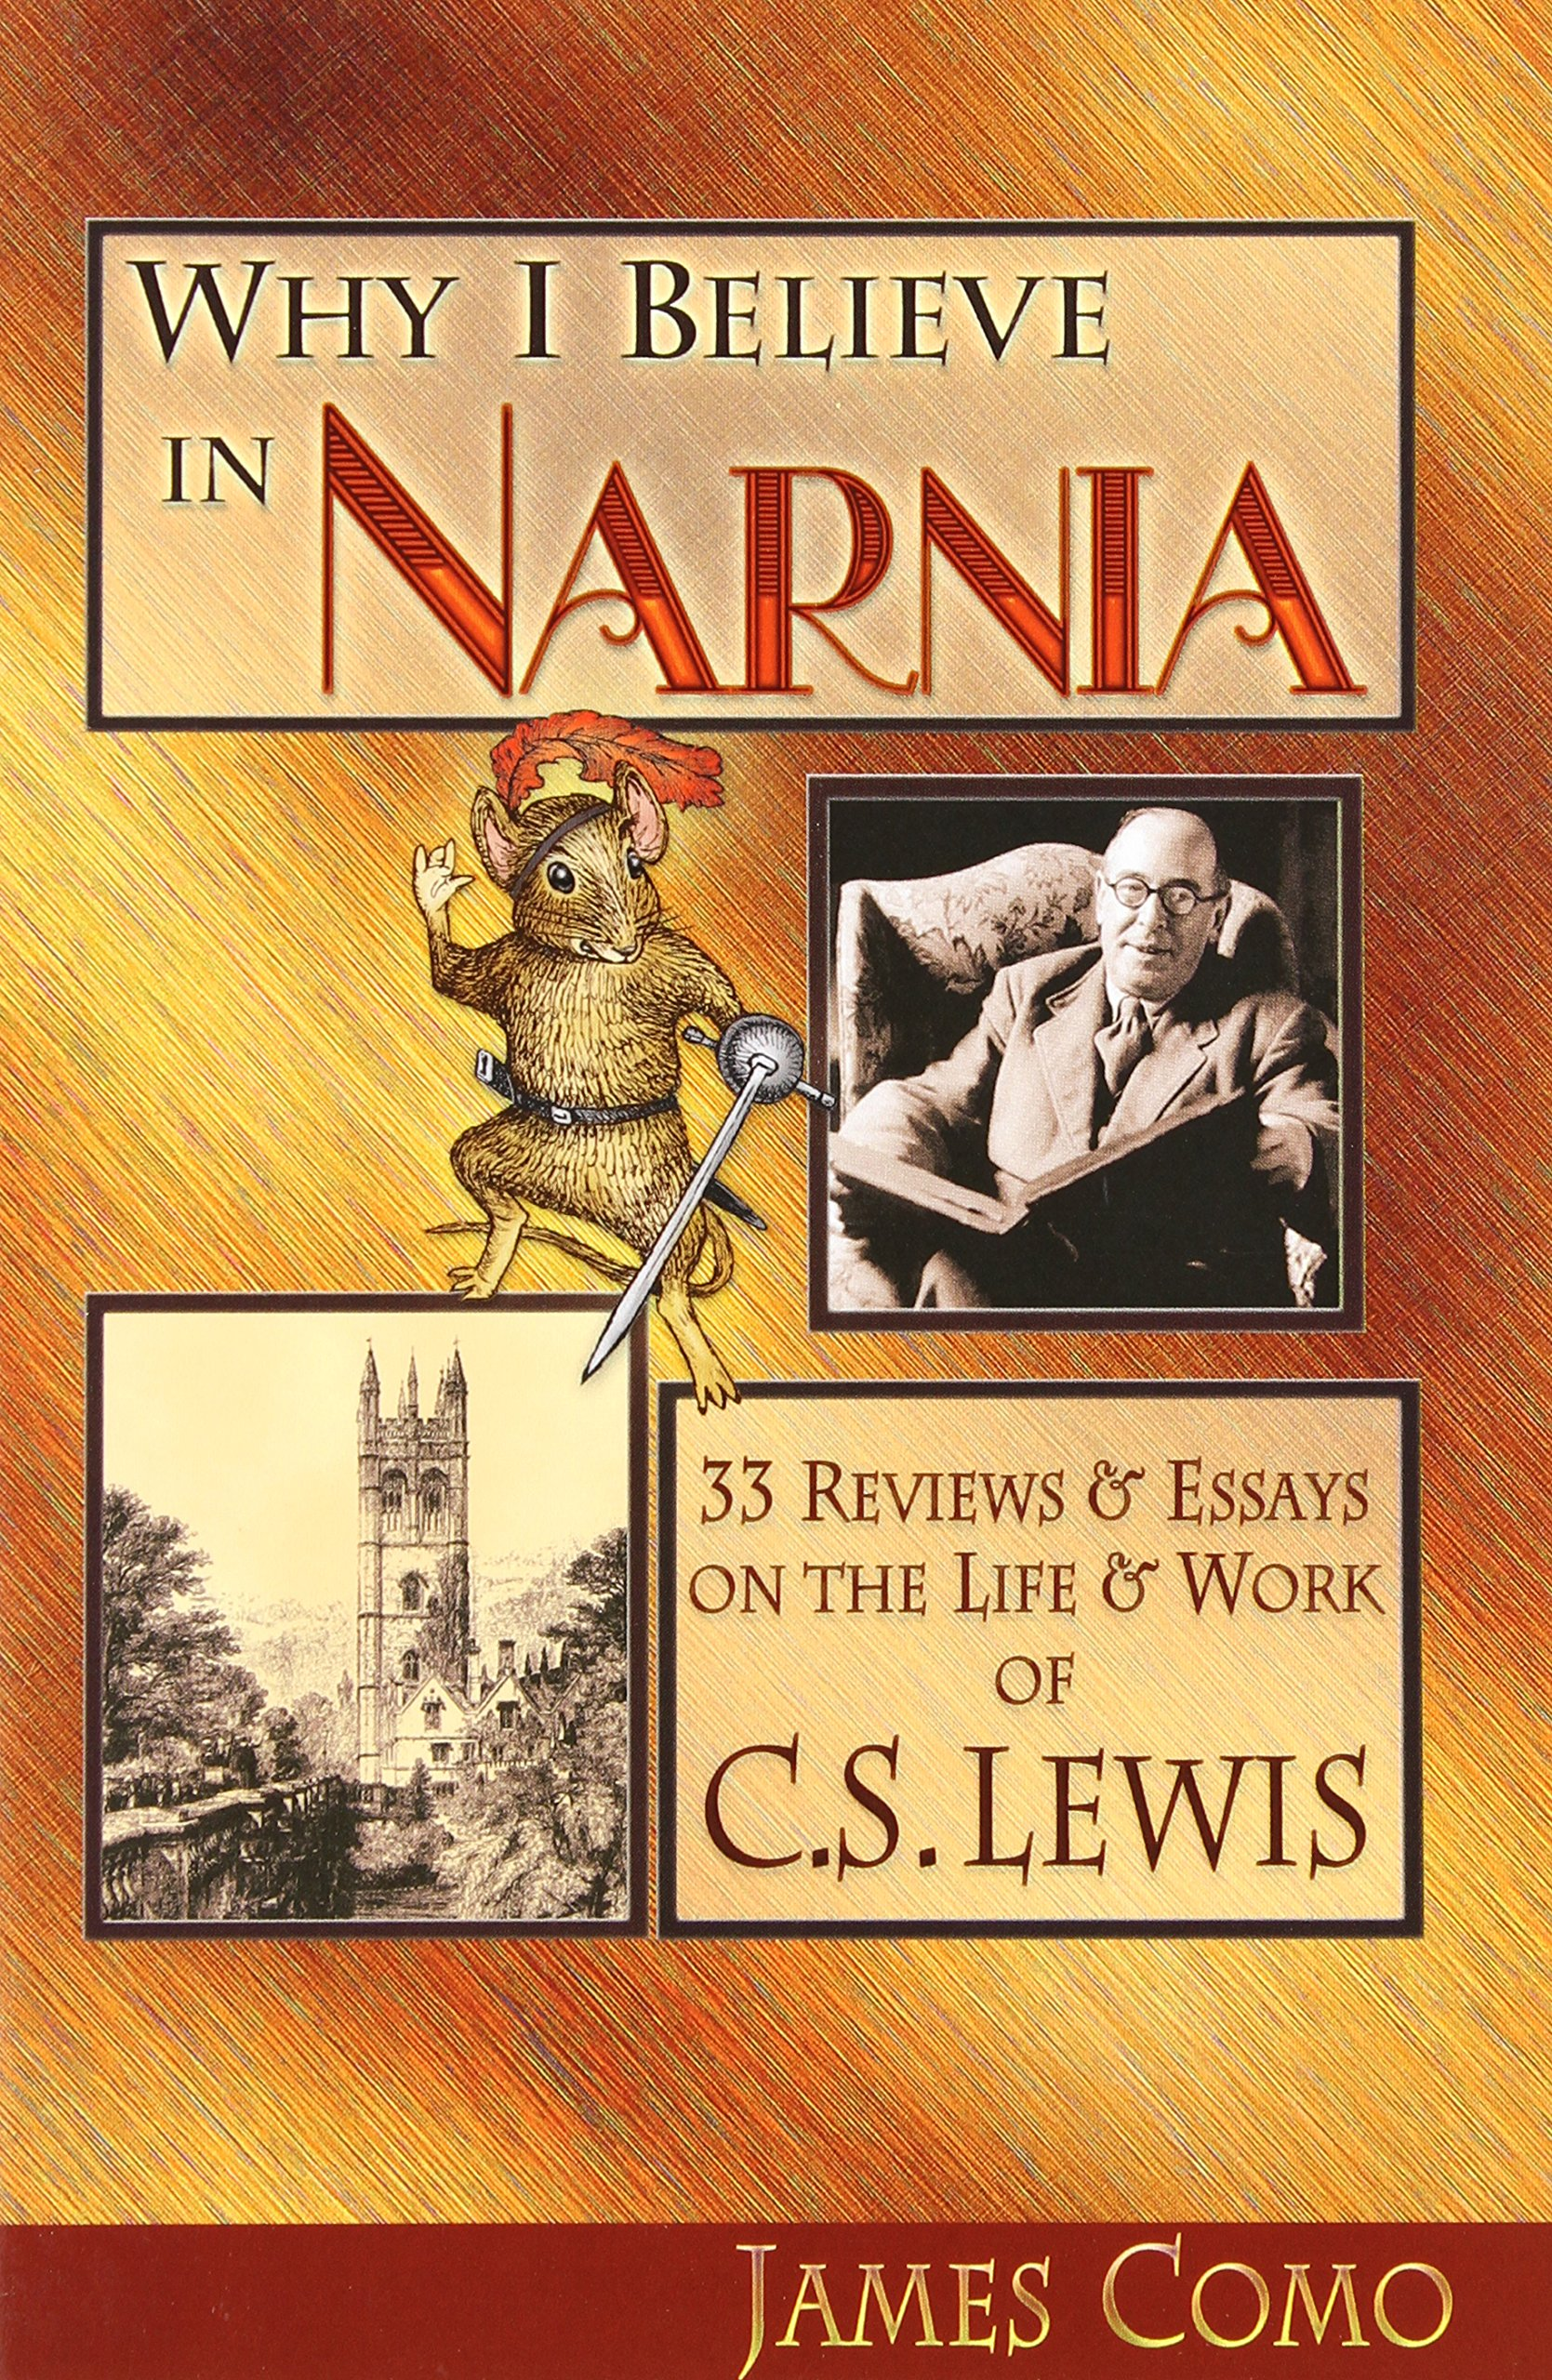 Download Why I Believe in Narnia: 33 Reviews & Essays on the Life & Works of C.S. Lewis pdf